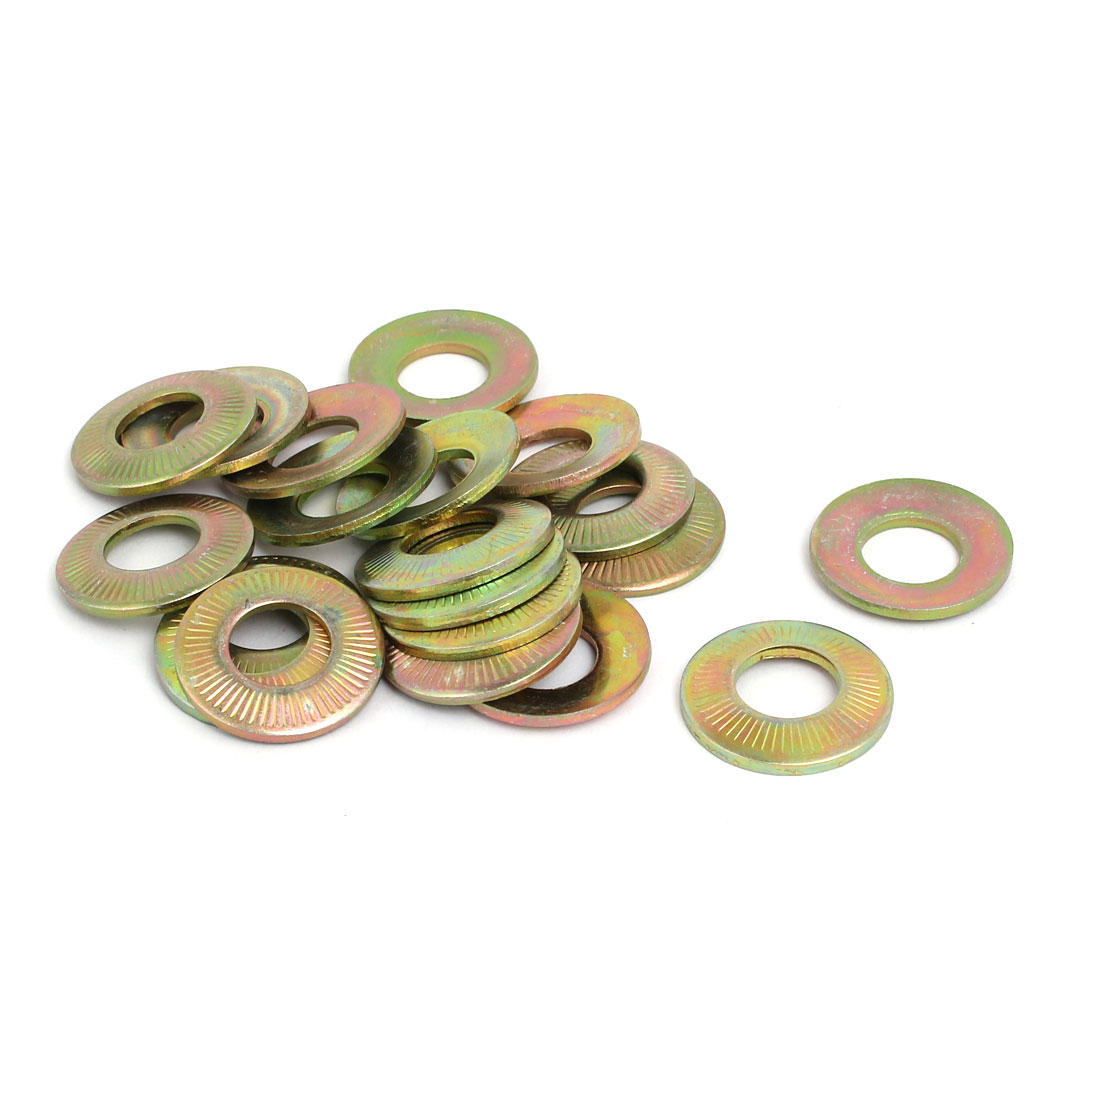 M12 Inner Dia Carbon Steel Serrated Conical Washer Bronze Tone 20pcs